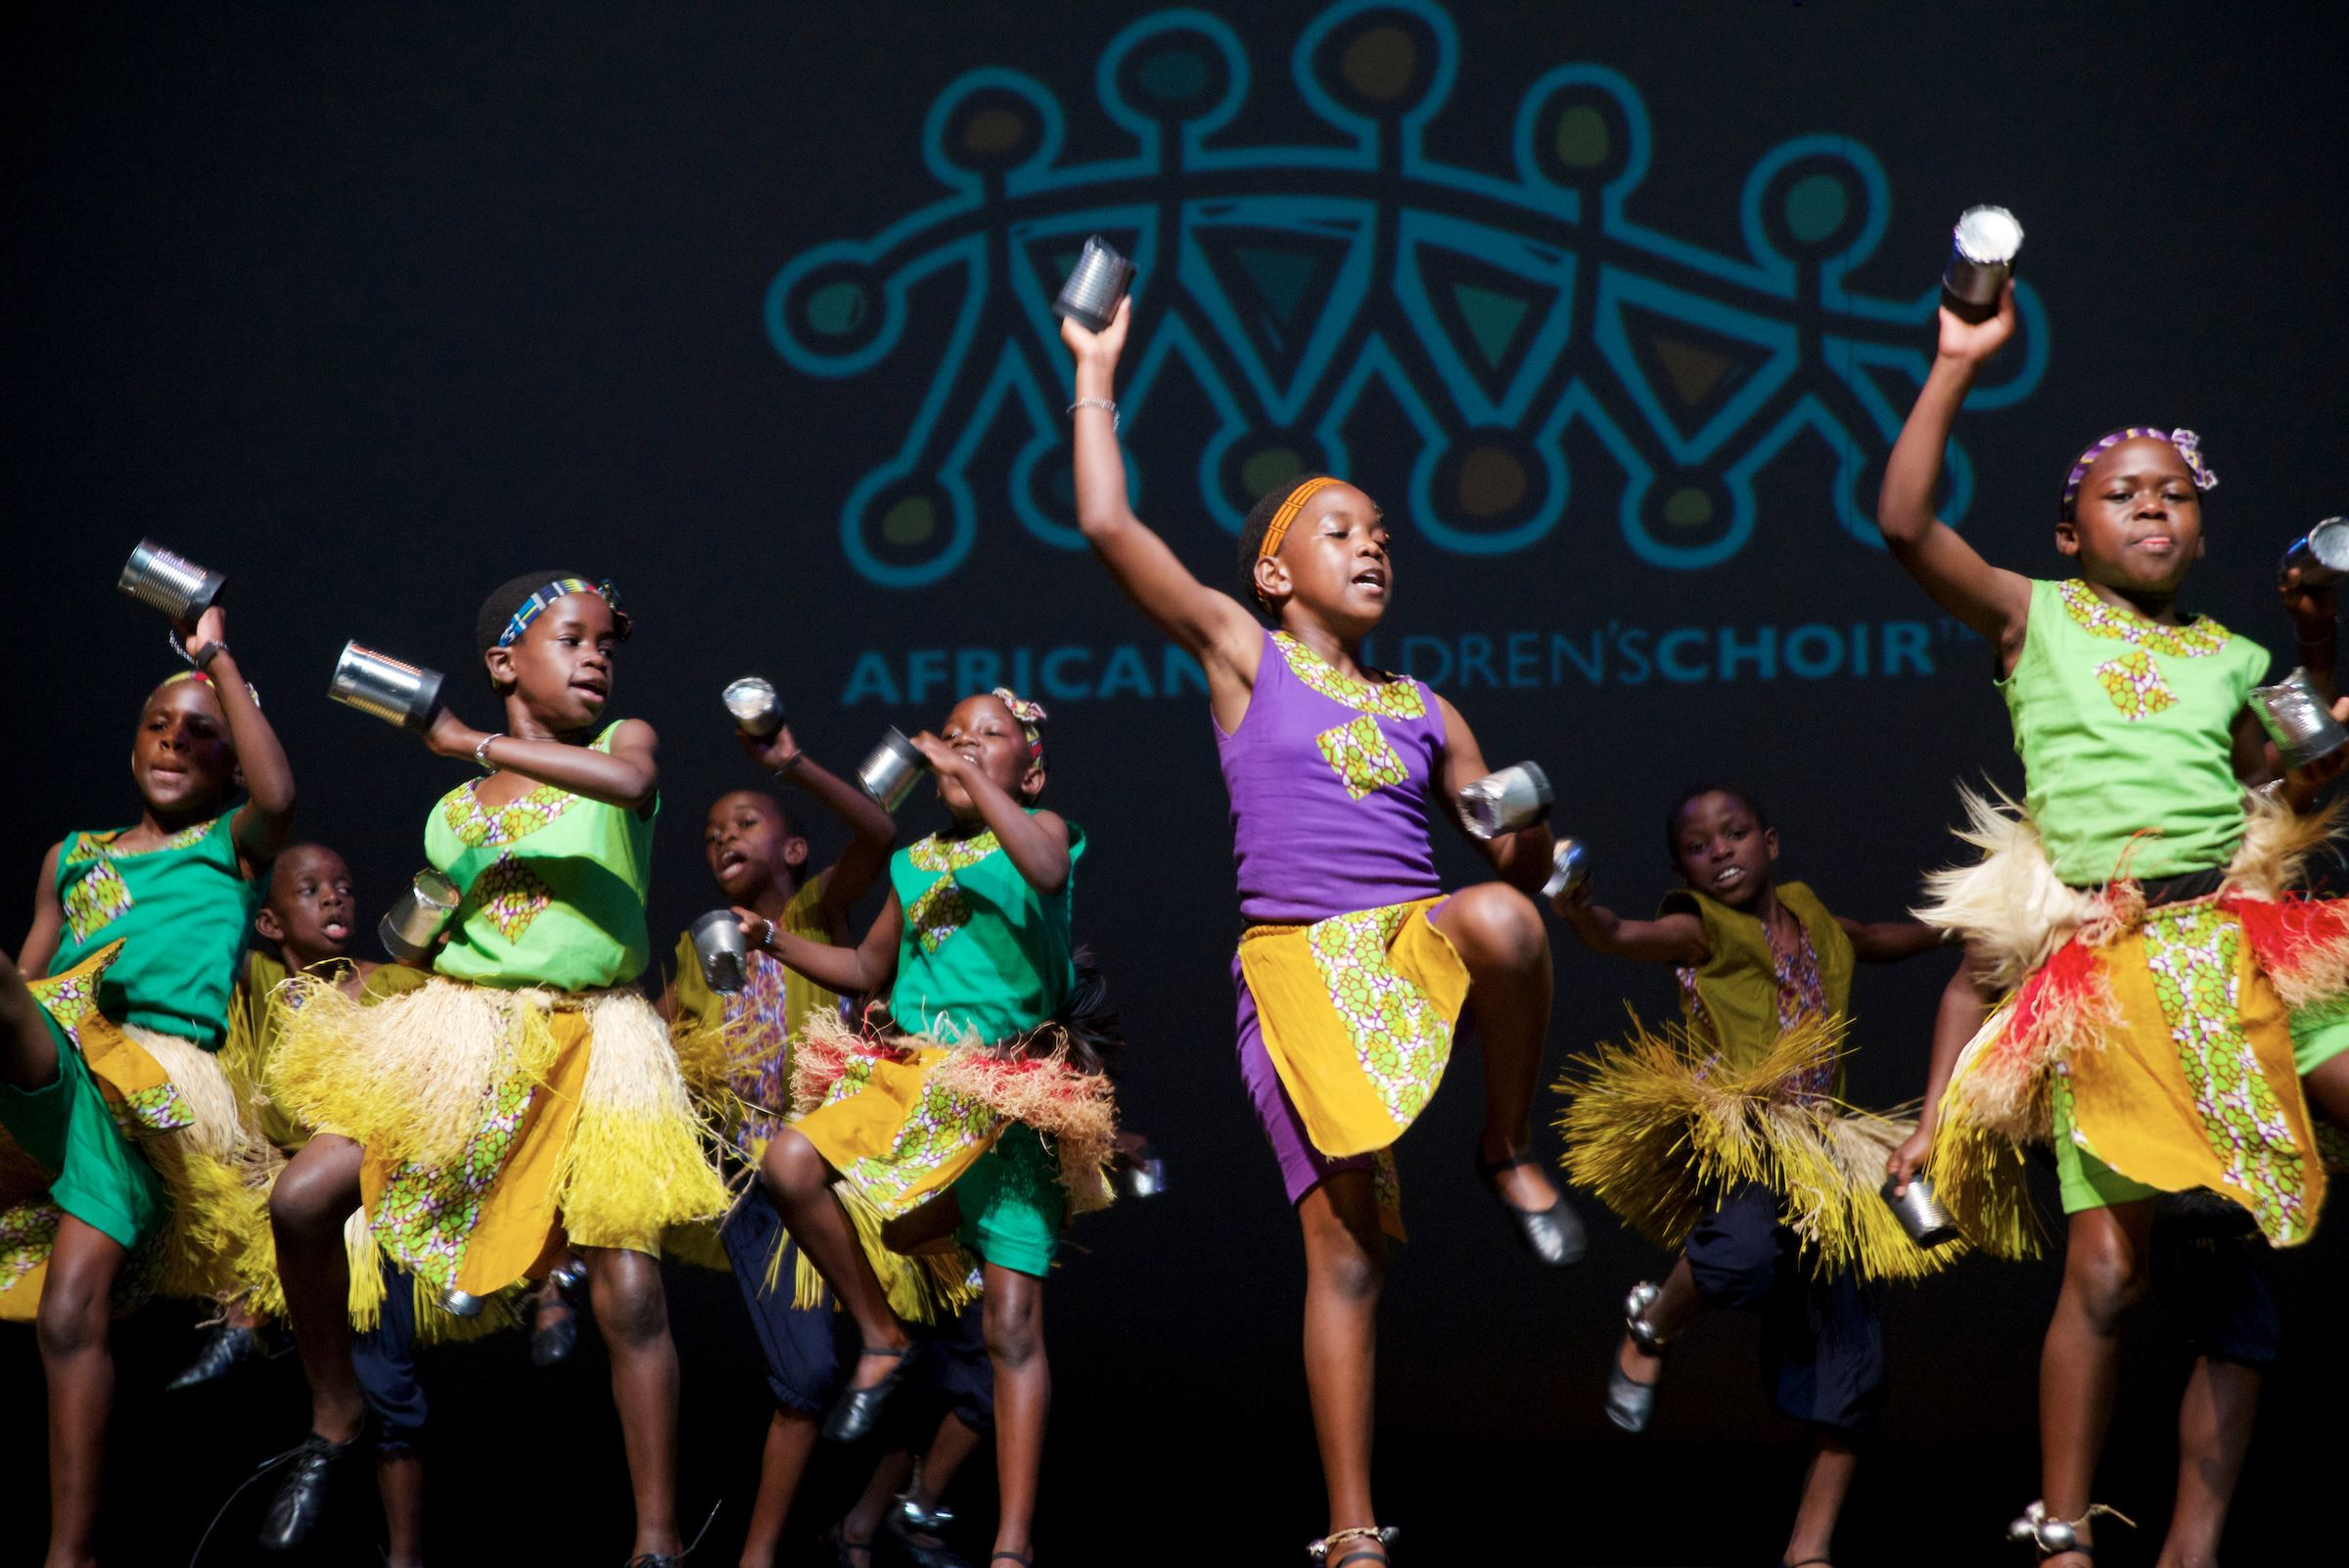 African Childrens Choir  (46)